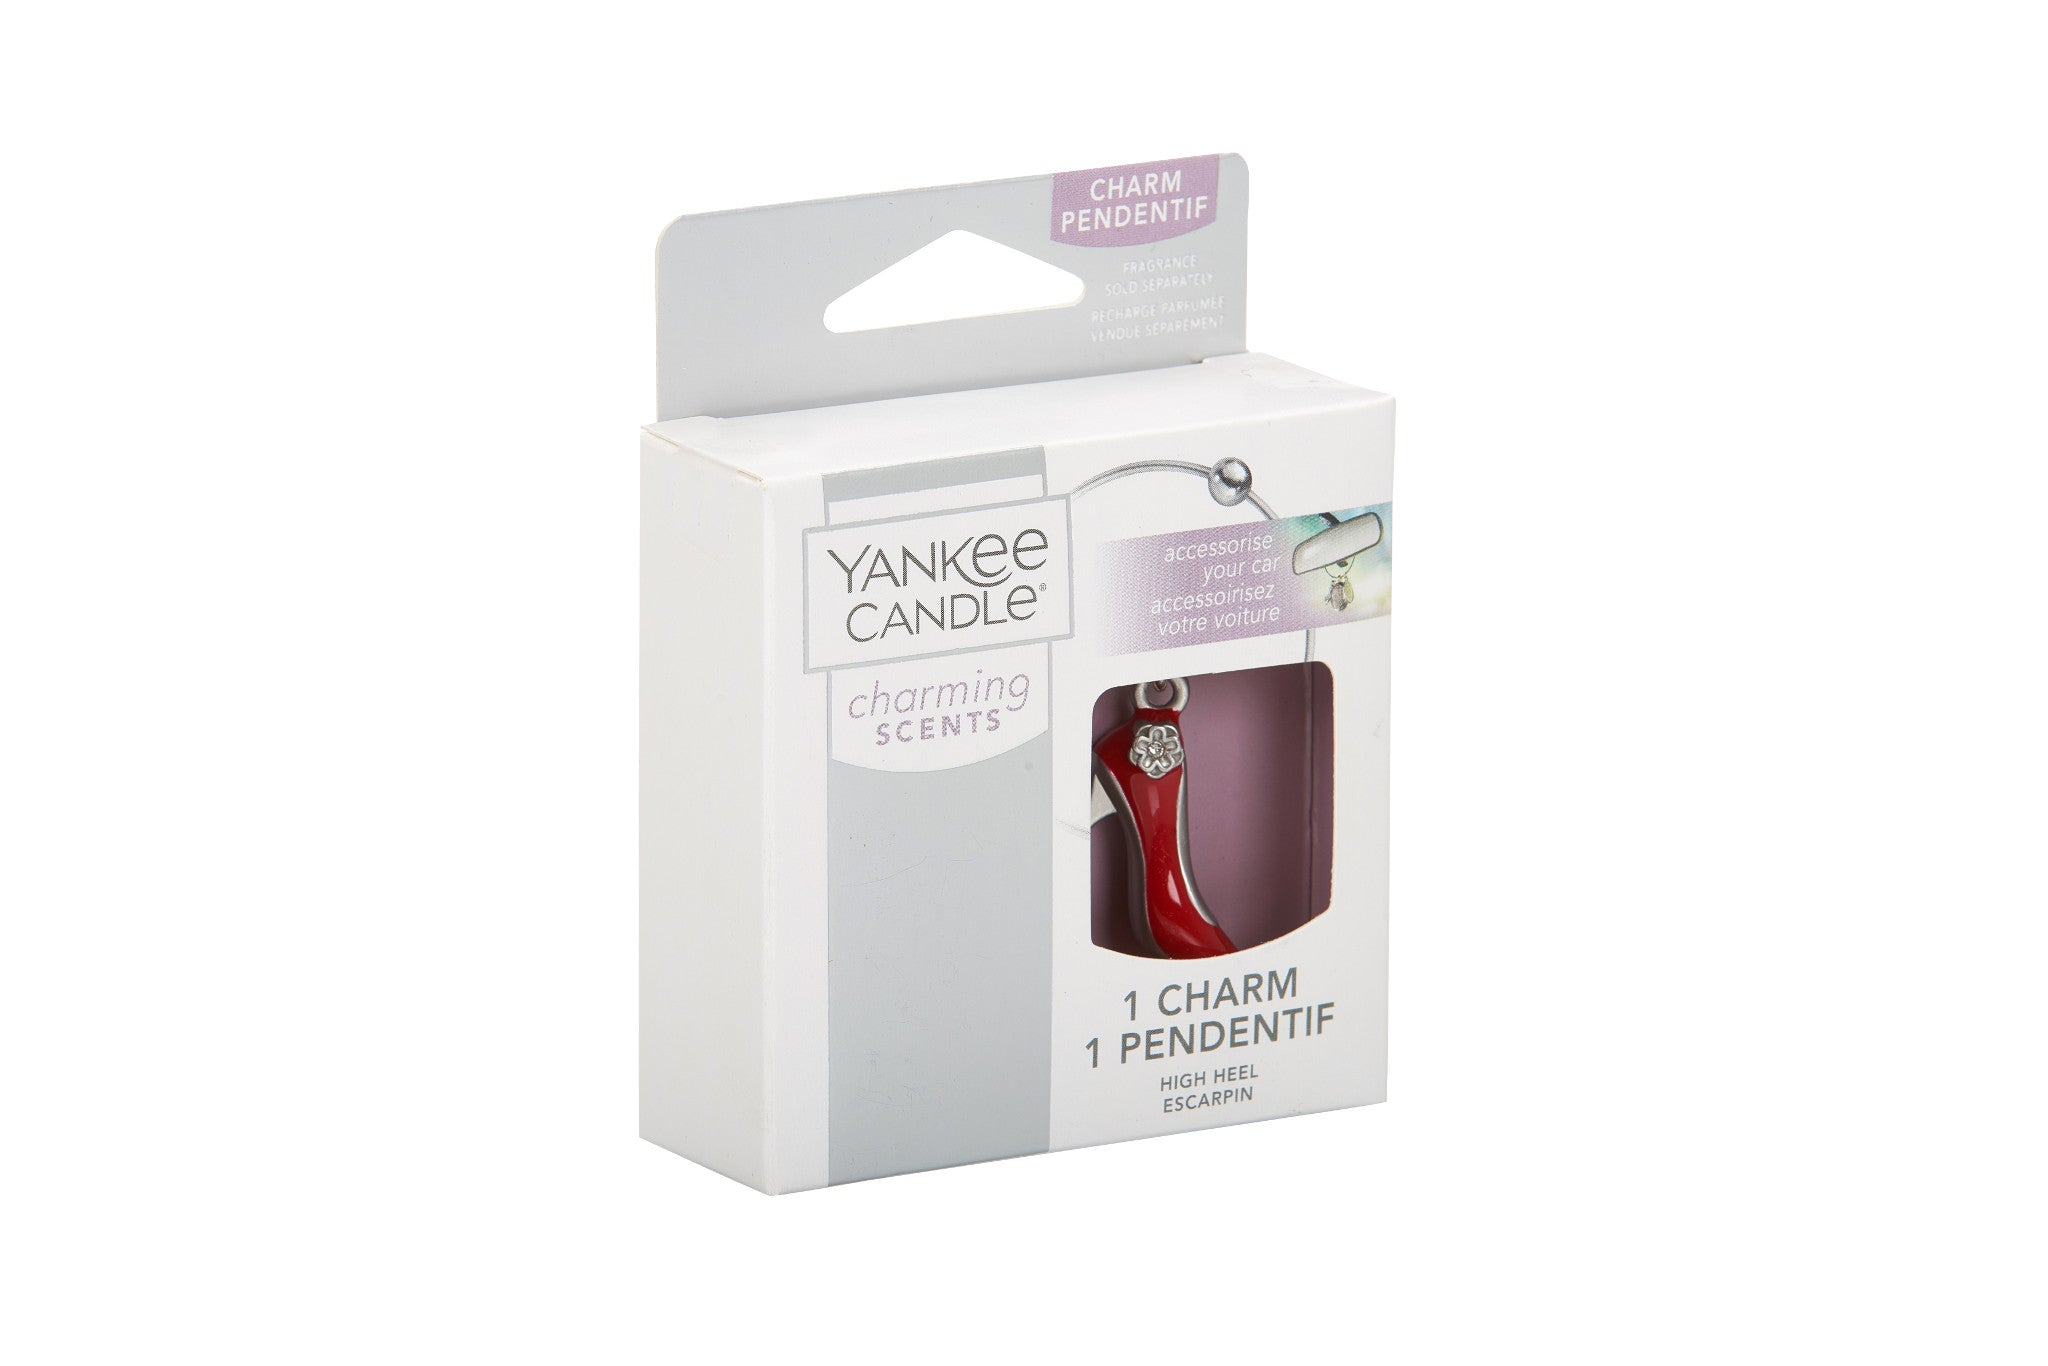 HIGH HEEL -Yankee Candle- Charming Scents Ciondolo